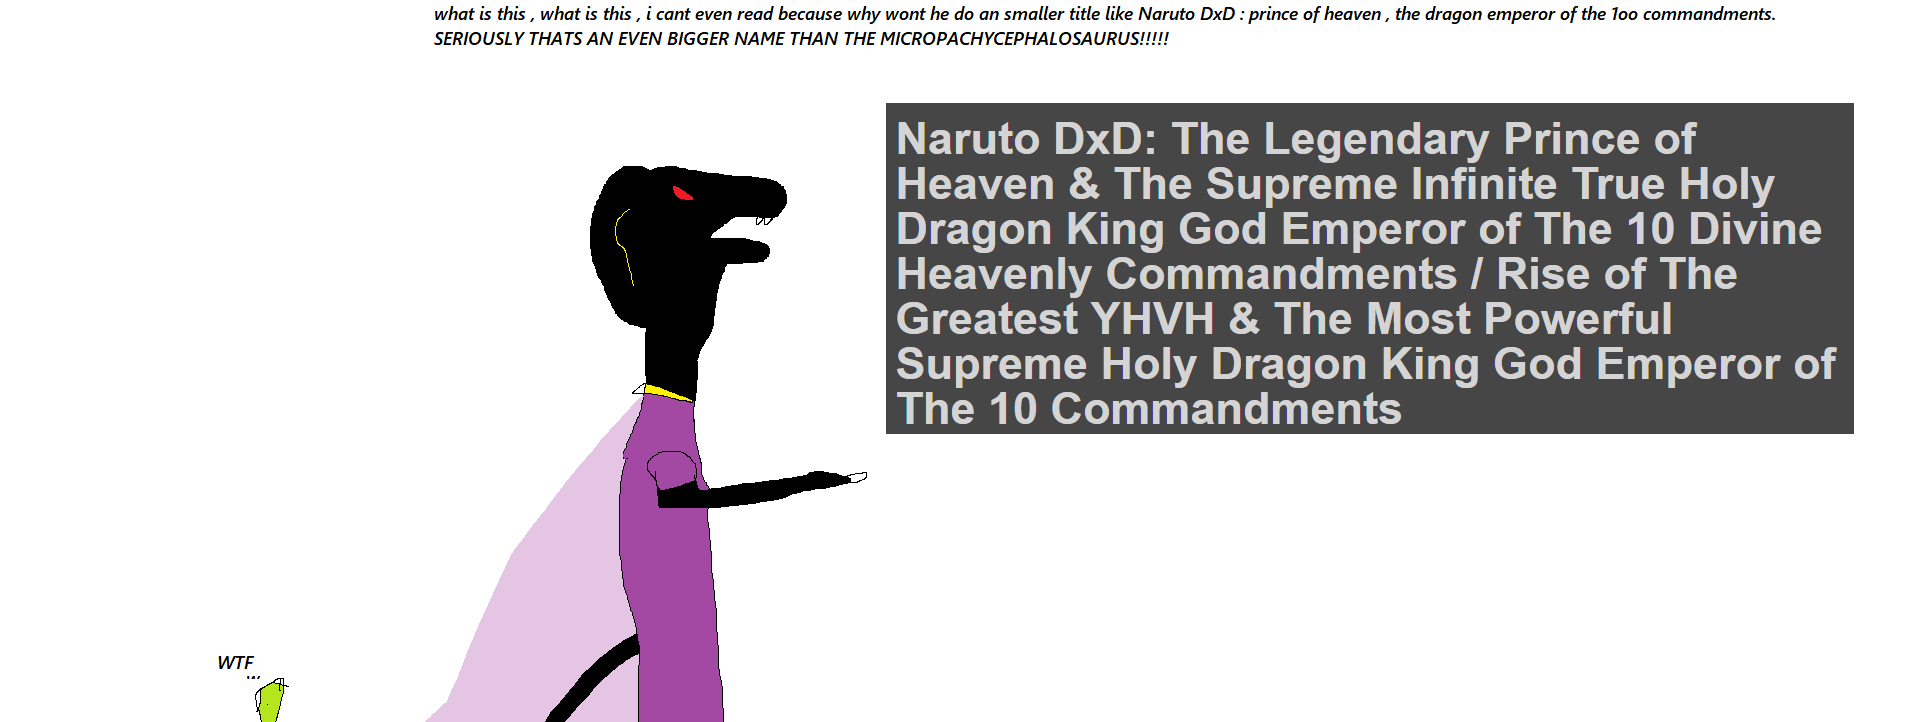 Naruto DxD: The Legendary Prince of Heaven & The Supreme Infinite True Holy Dragon King God Emperor of The 10 Divine Heavenly Commandments / Rise of The Greatest YHVH & The Most Powerful Supreme Holy Dragon King God Emperor of The 10 Commandments